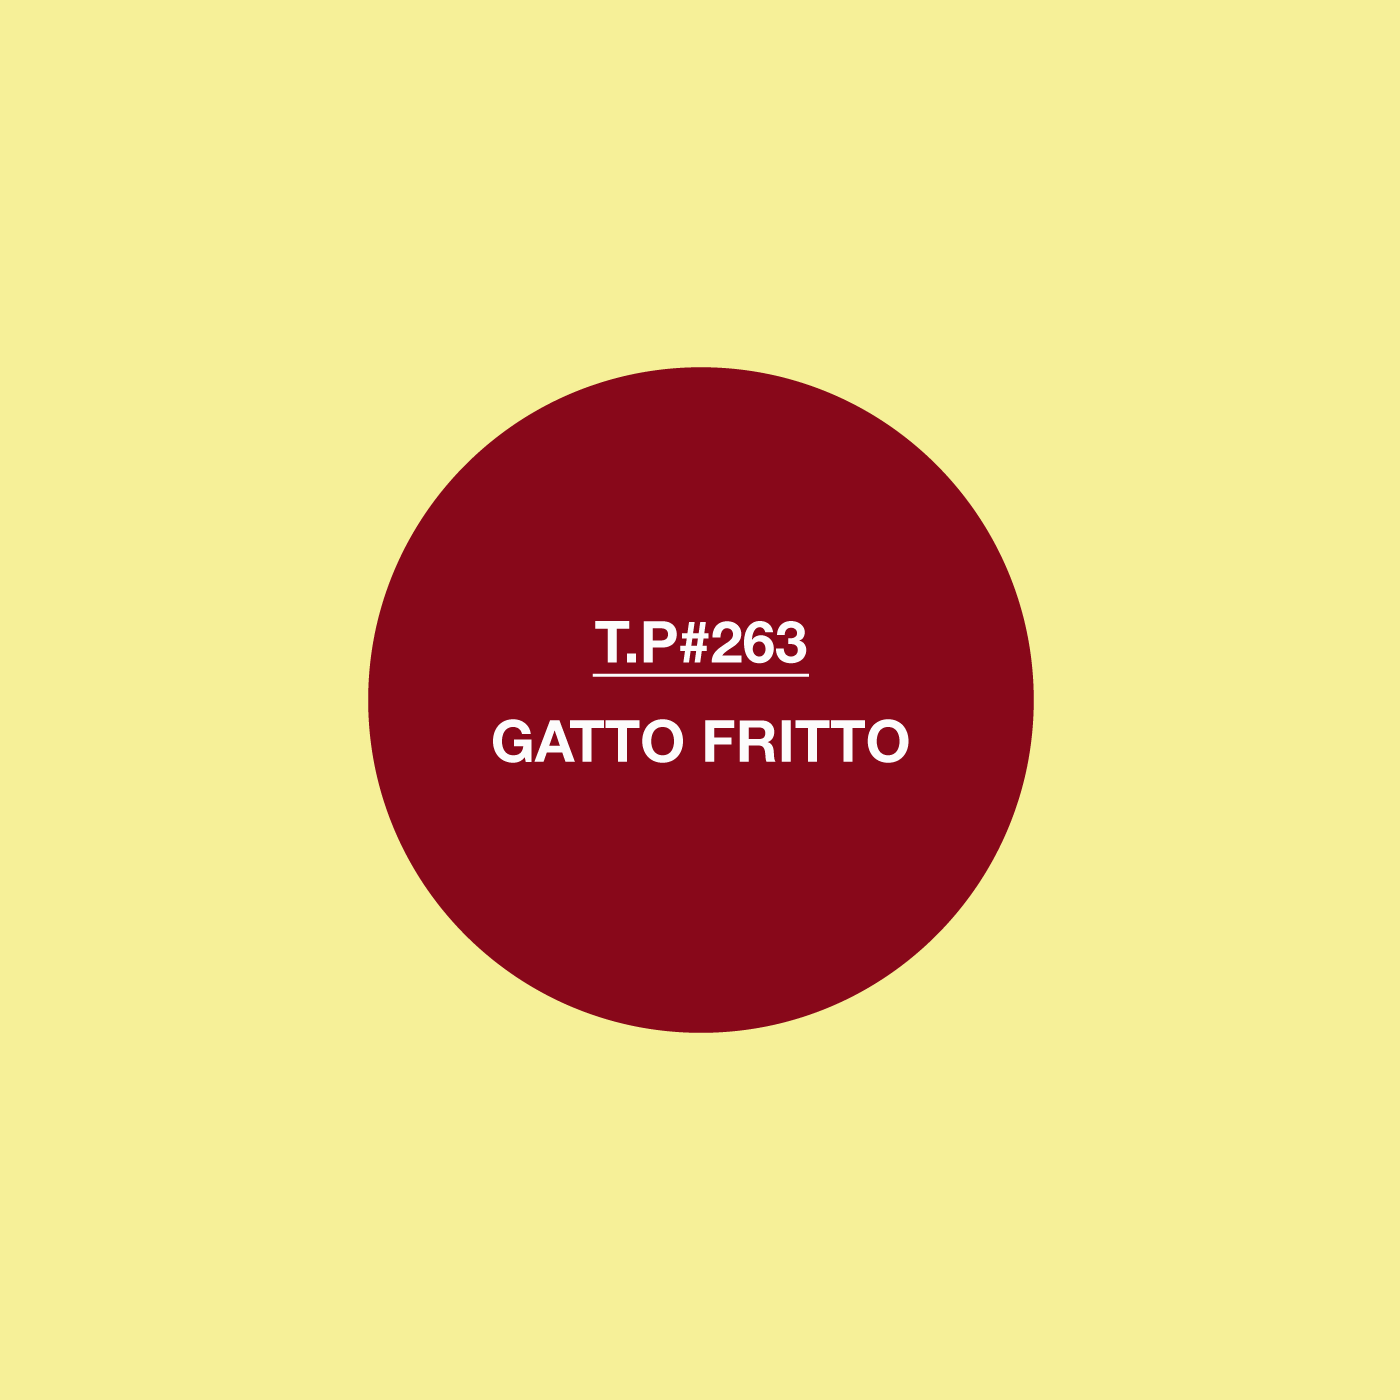 Gatto Fritto, Mix, Test Pressing, Balearic, Disco, Kraut, Post-Punk, Straight Edger